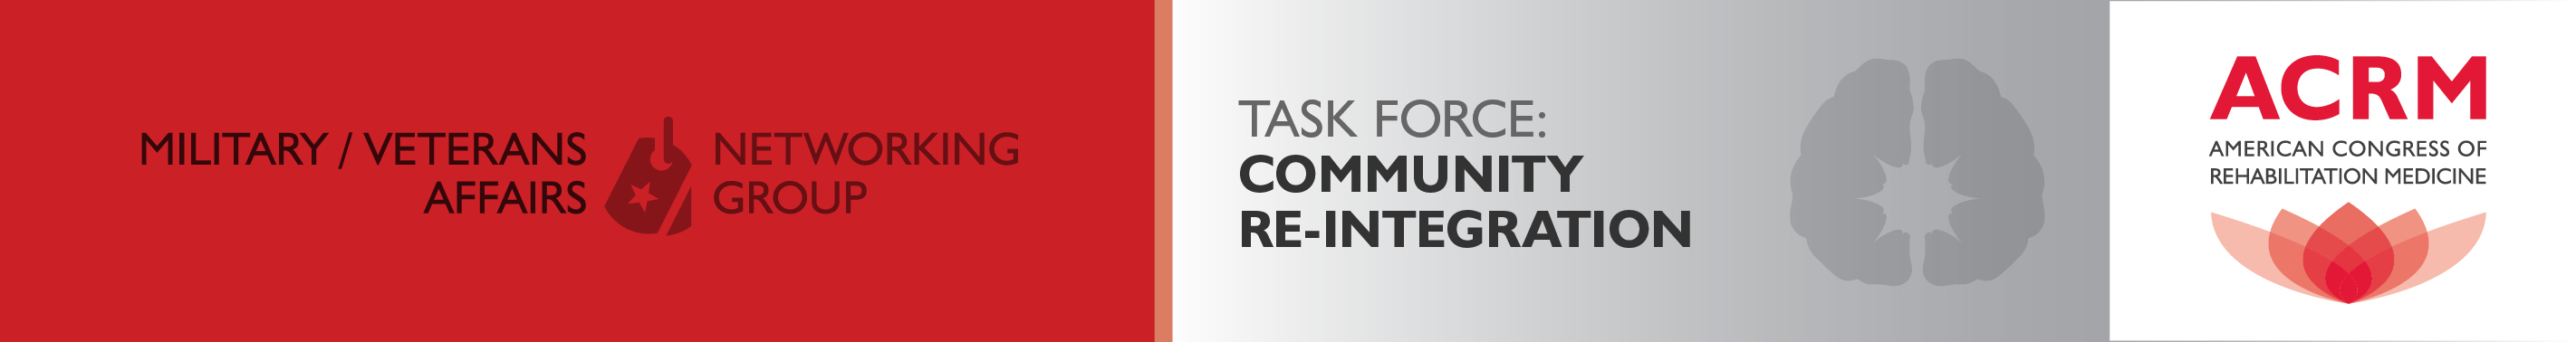 Military / Veterans Affairs Community Re-Integration Task Force banner